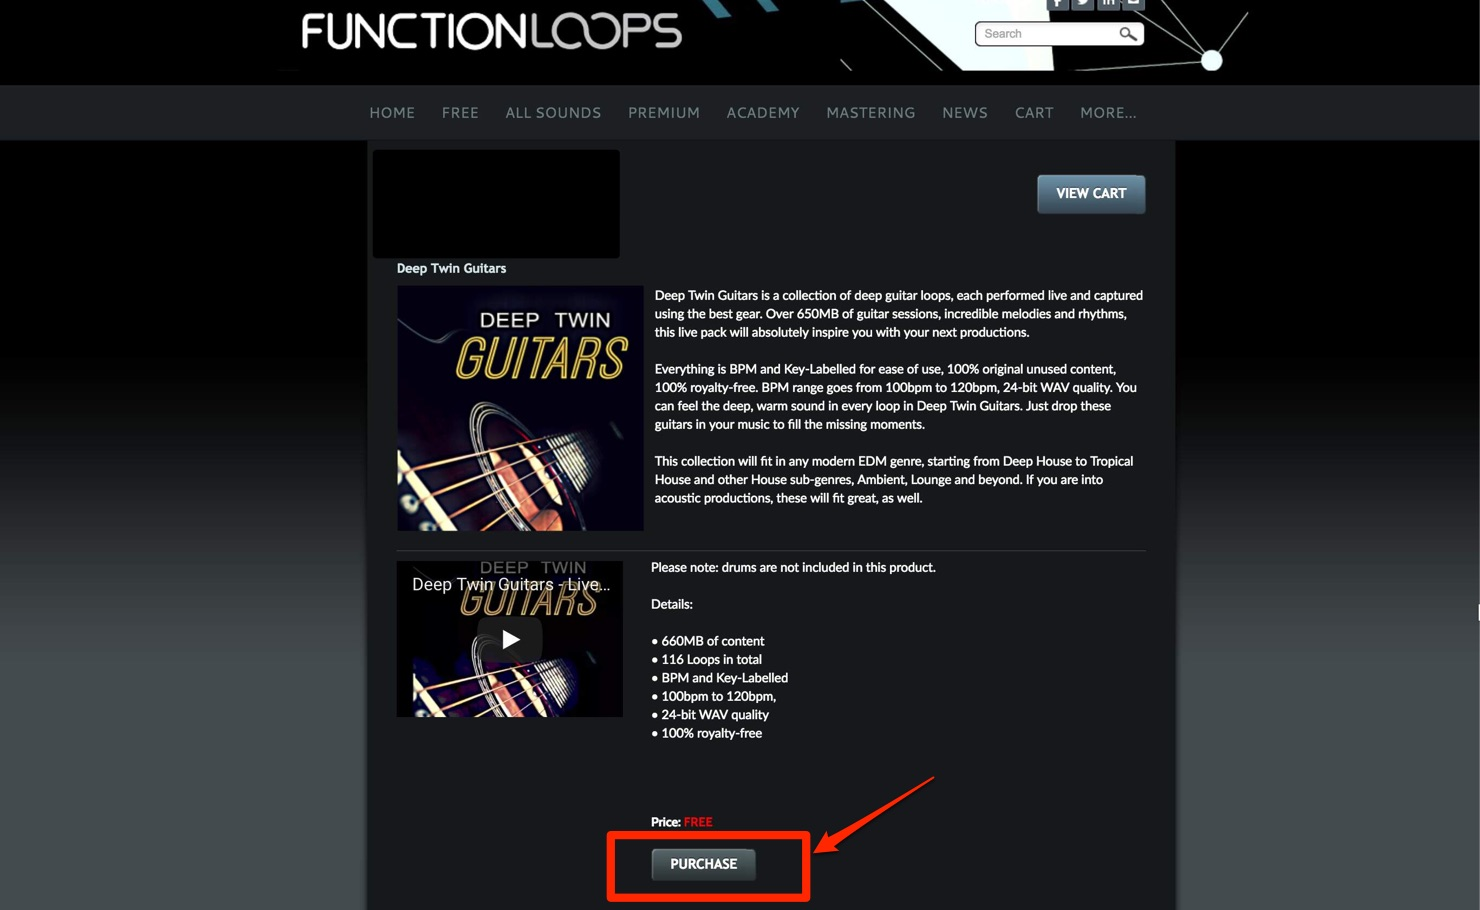 Function-Loops-Deep-Twin-Guitars-free-1